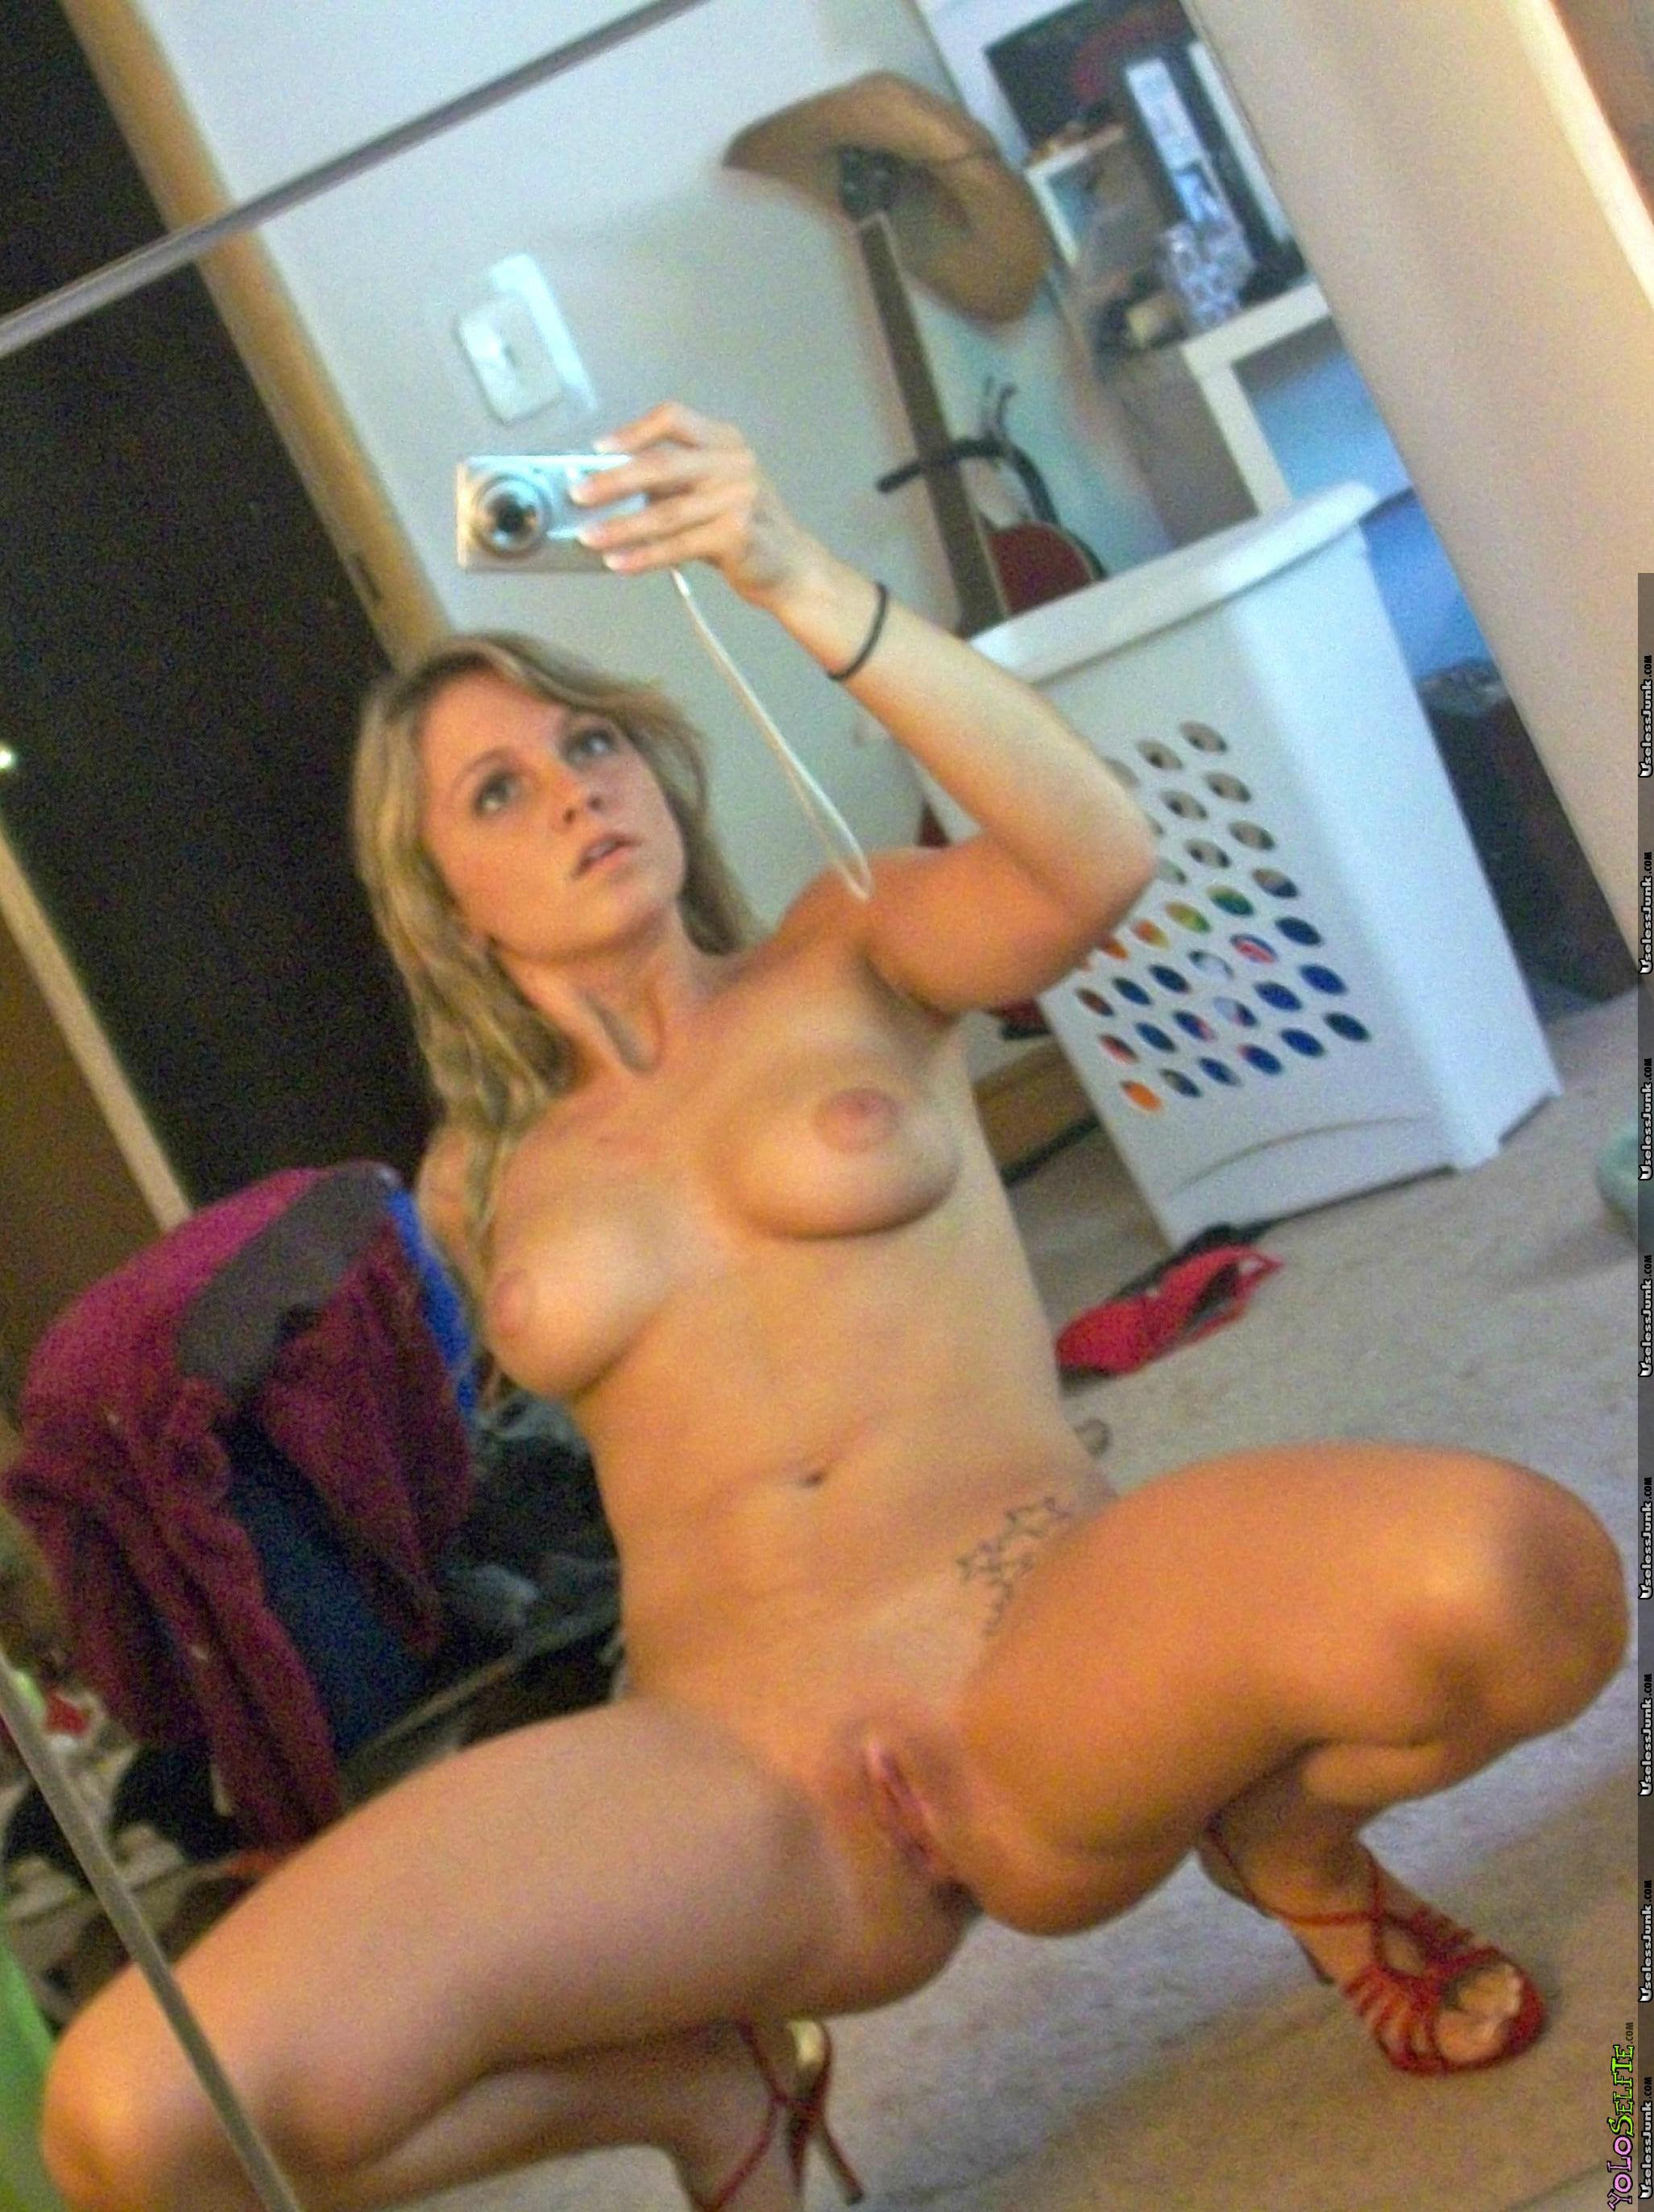 Country Star Nude photo 3